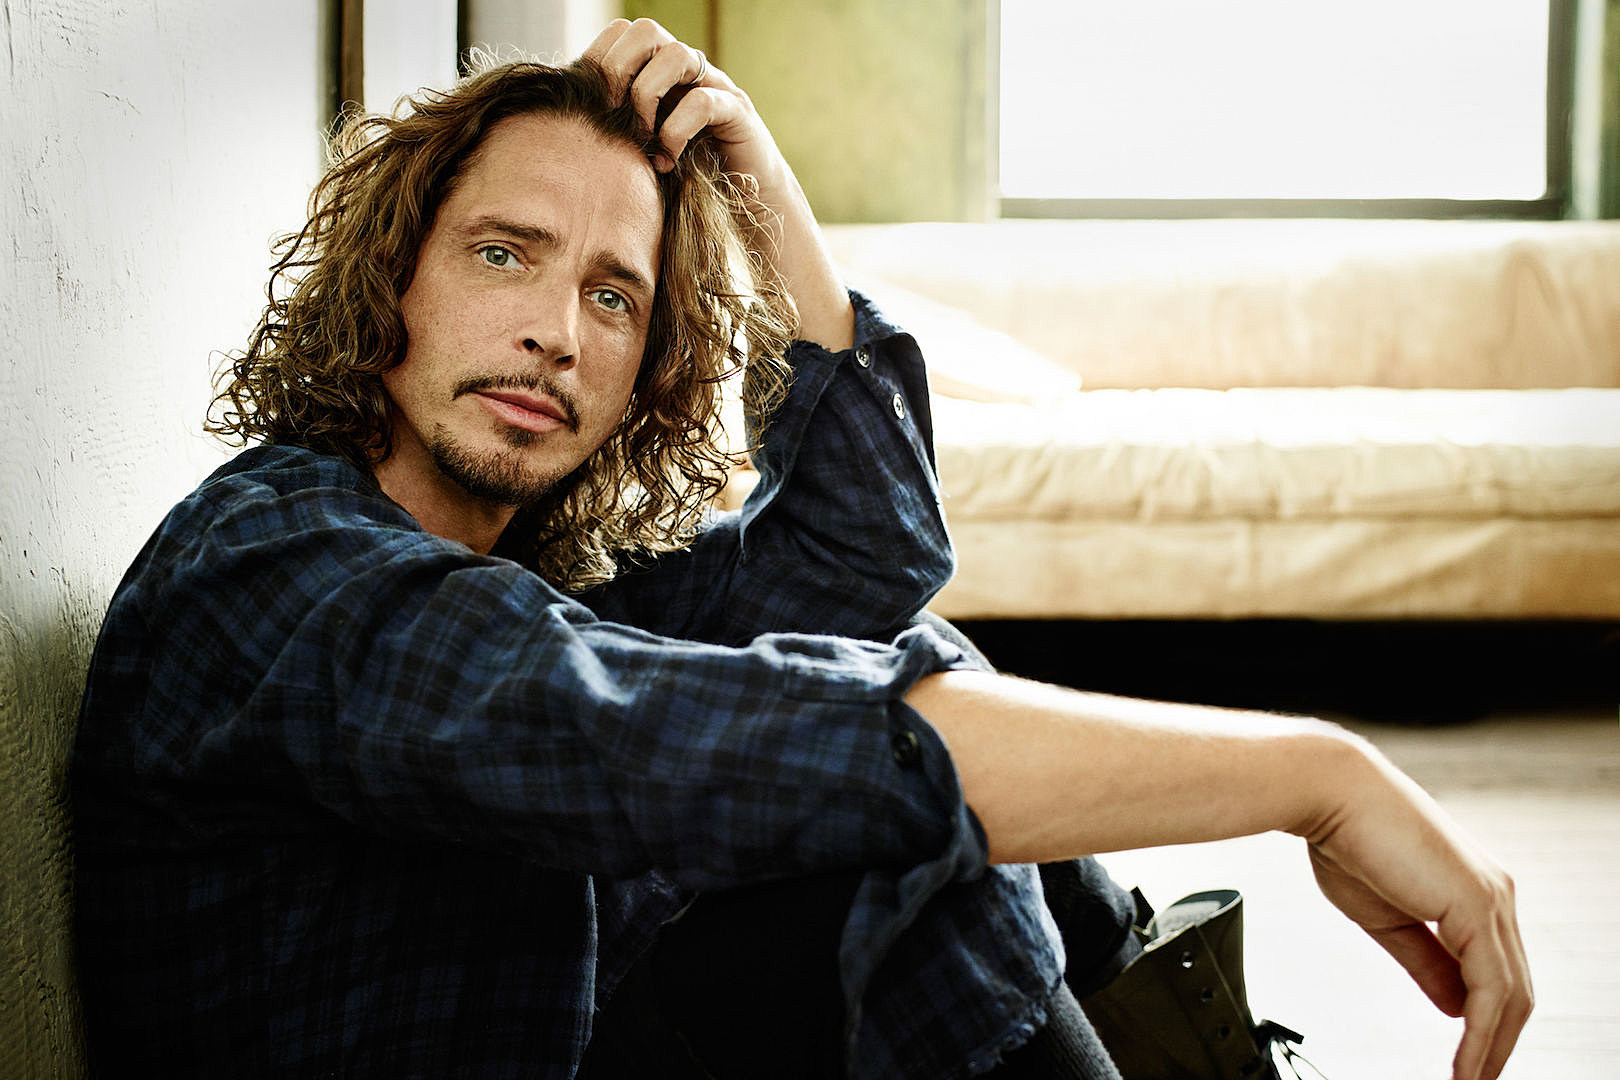 Chris Cornell's Powerful 'When Bad Does Good' Lyric Video Released, Album + Box Set Due in November | The Rock of Rochester